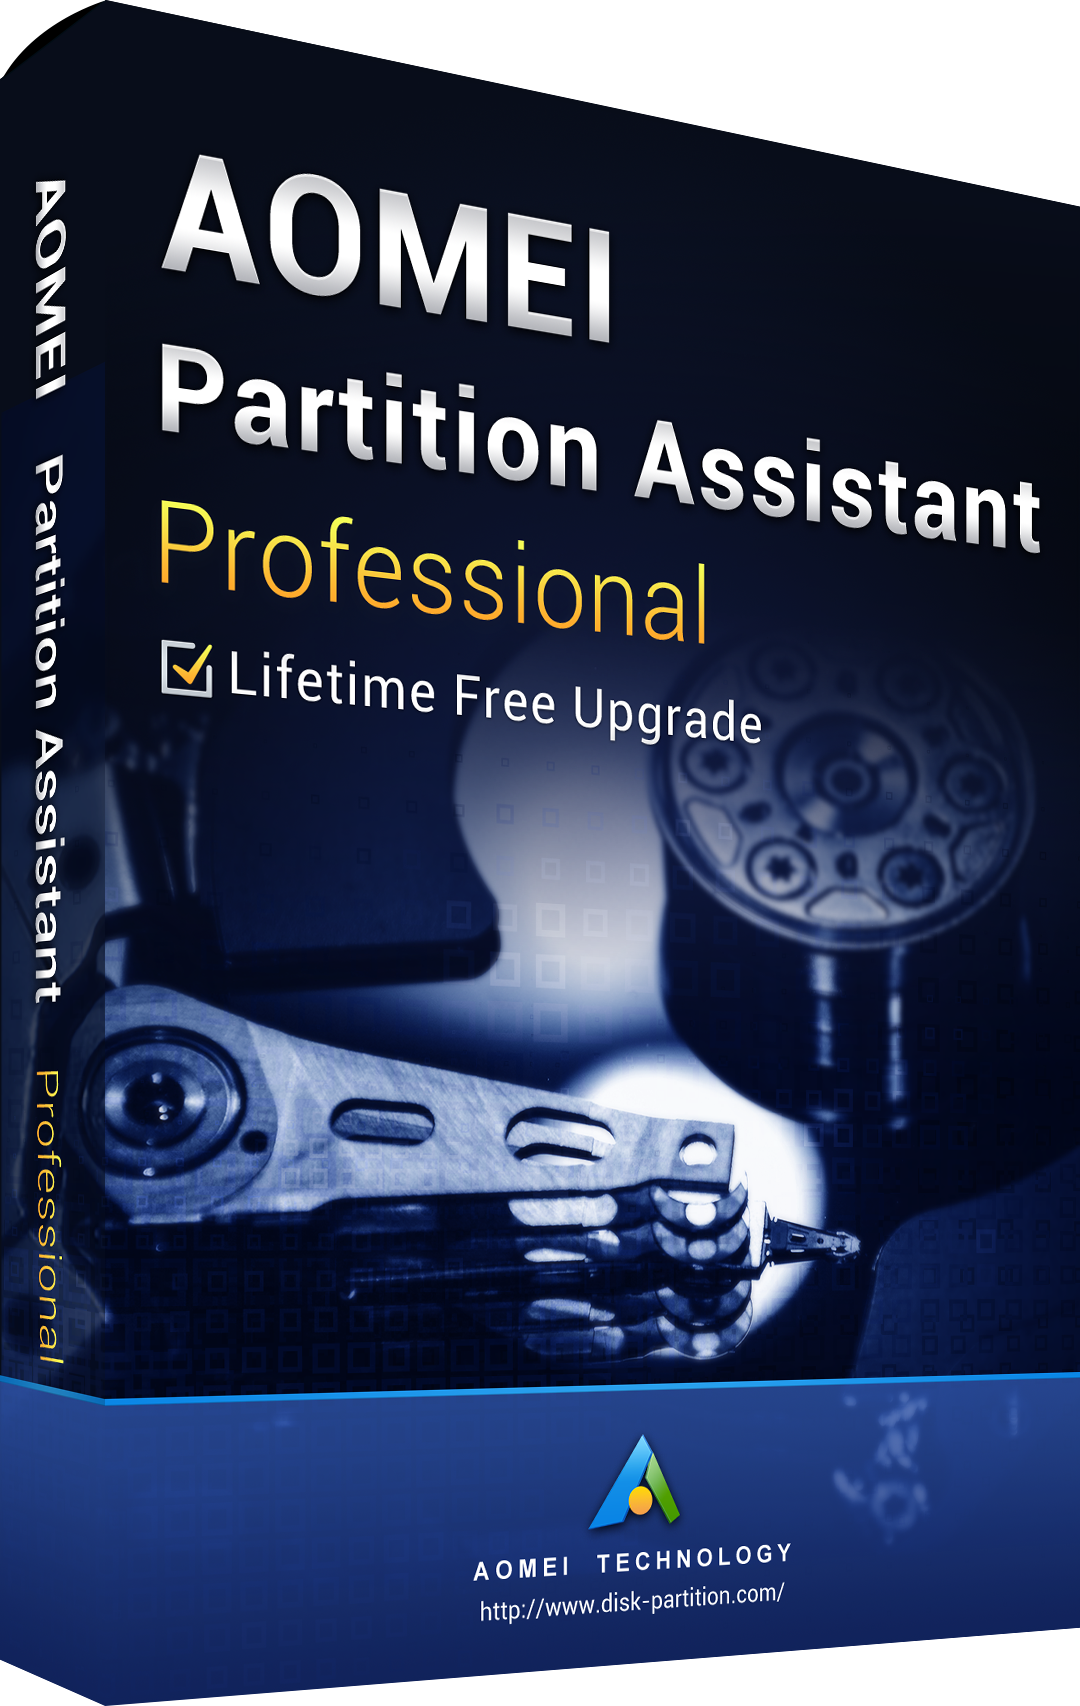 AOMEI Partition Assistant Professional + Free Lifetime Upgrades 8.0 Eidtion Key Global